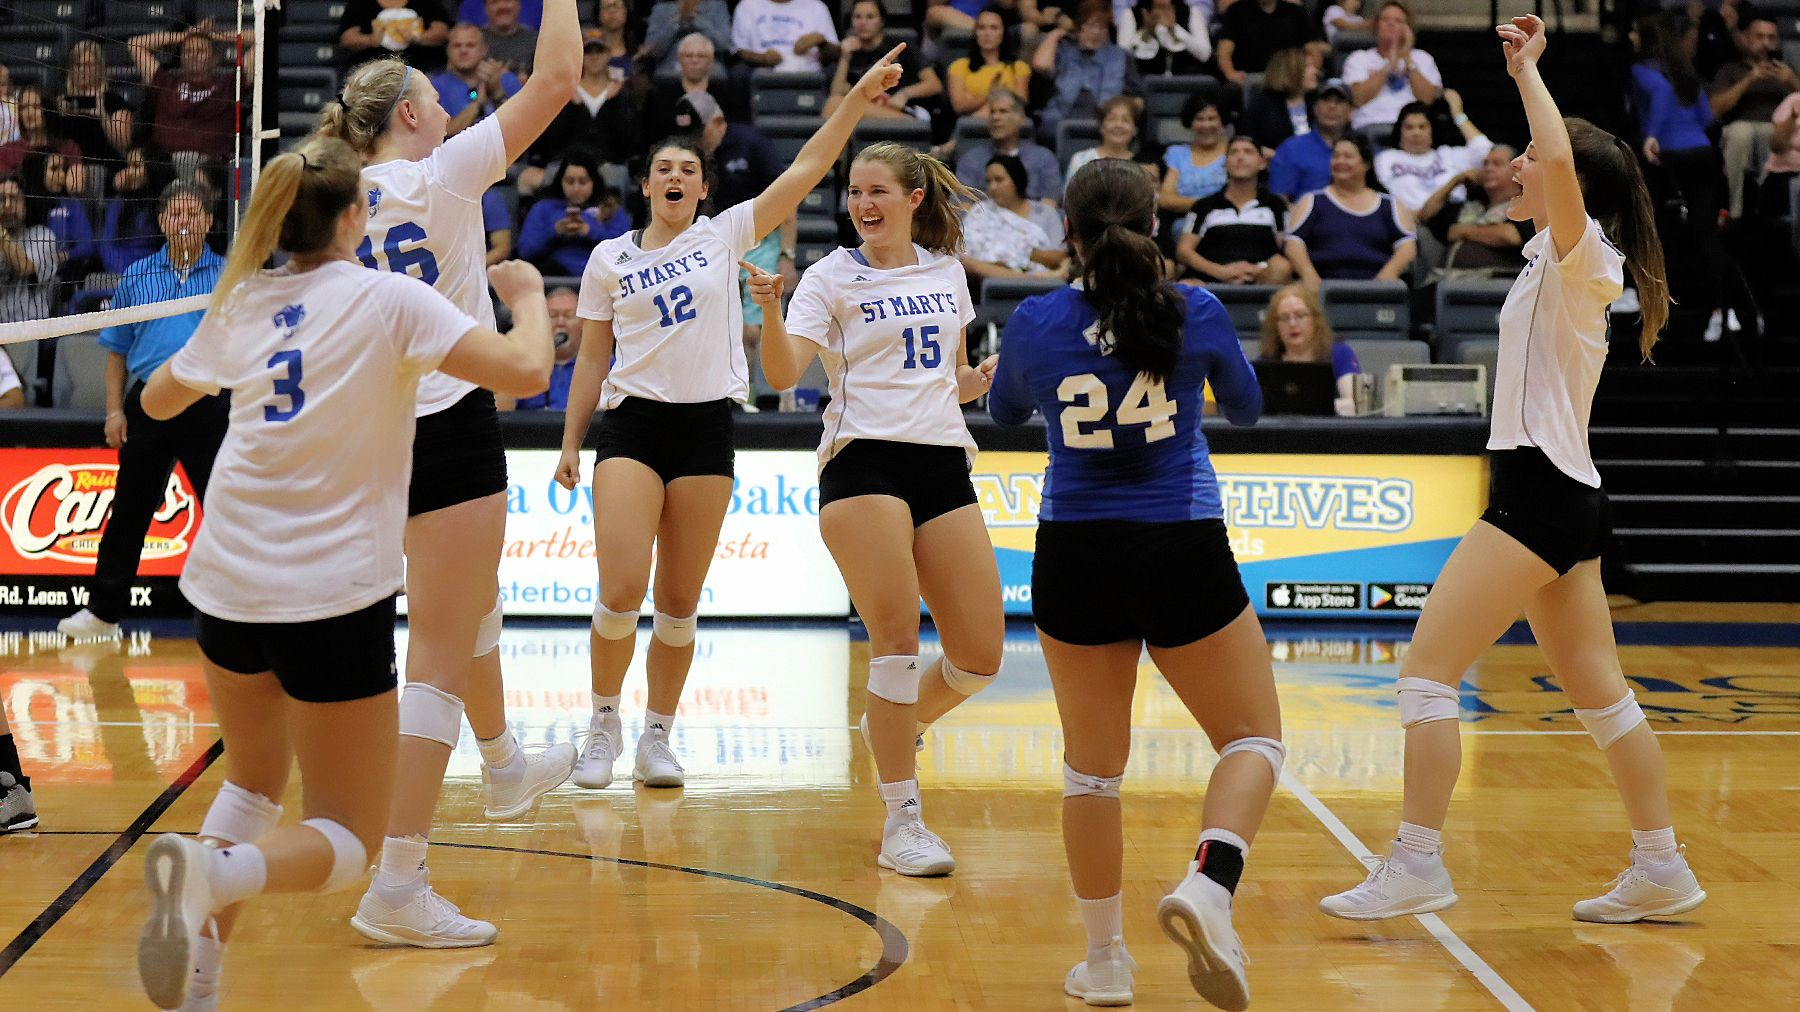 Stmu Volleyball Sweep Texas A M Int Dustdevils Athlete Sweep Conference